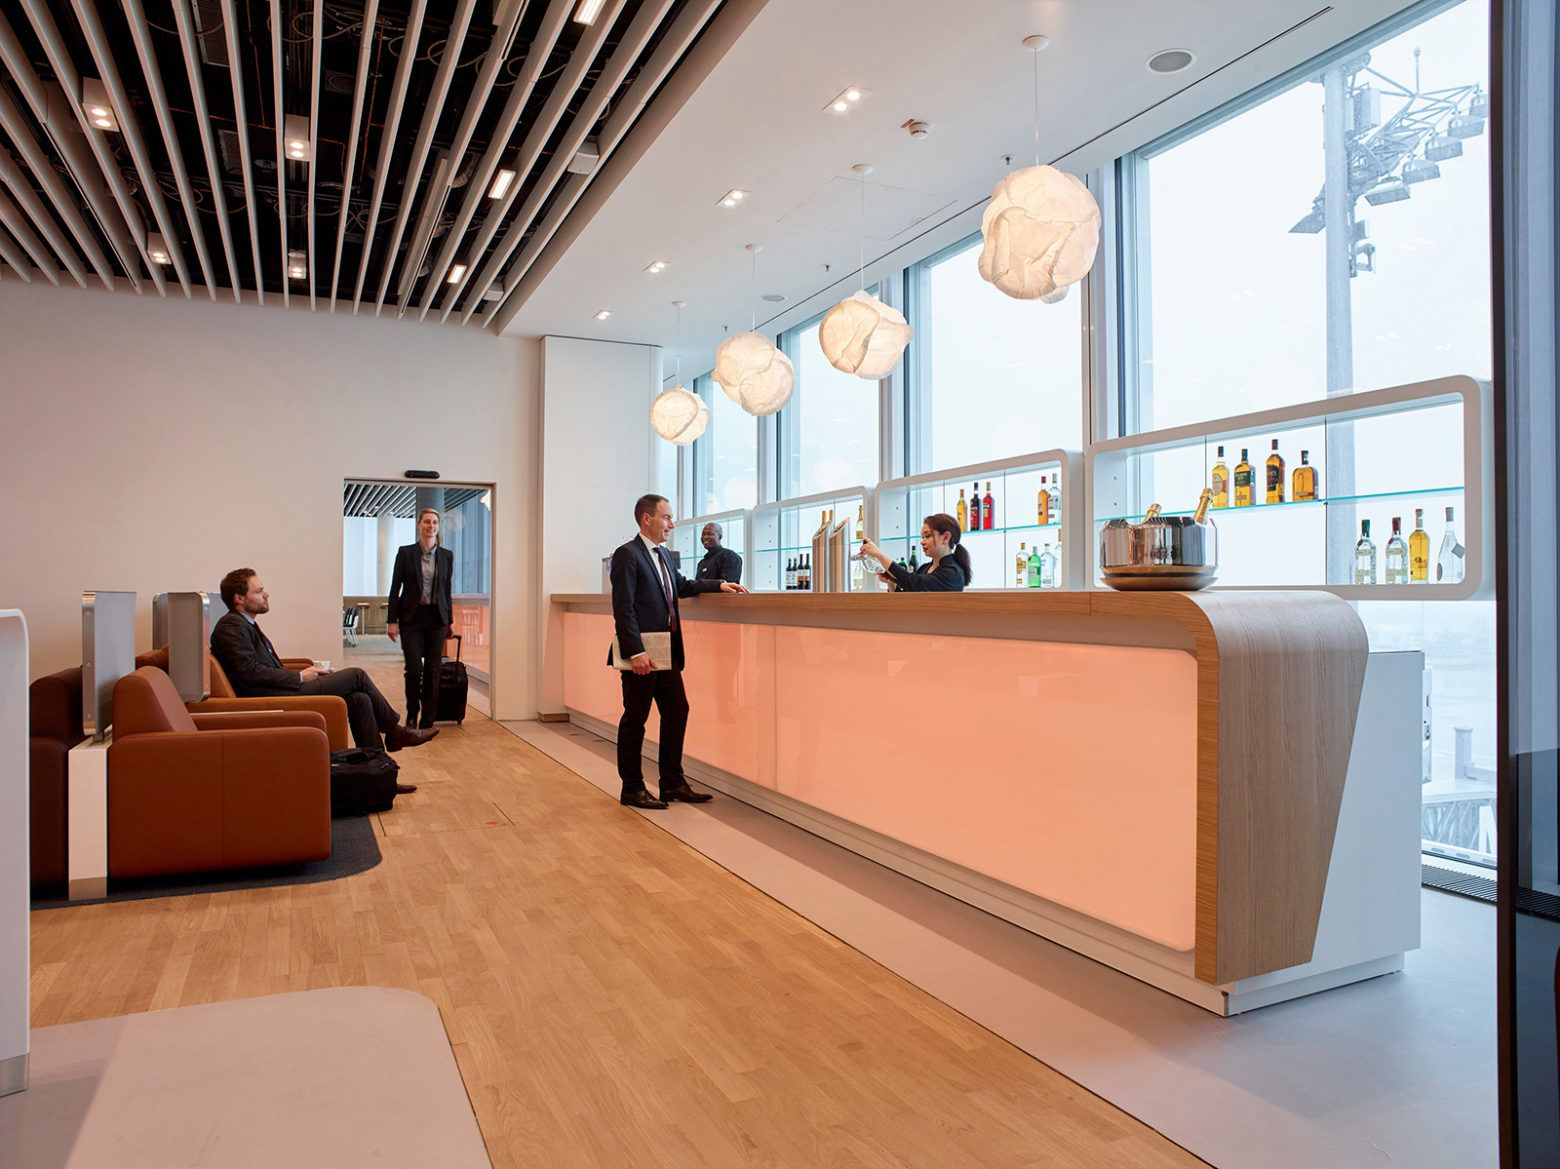 Best Airport Lounges In The World 2019